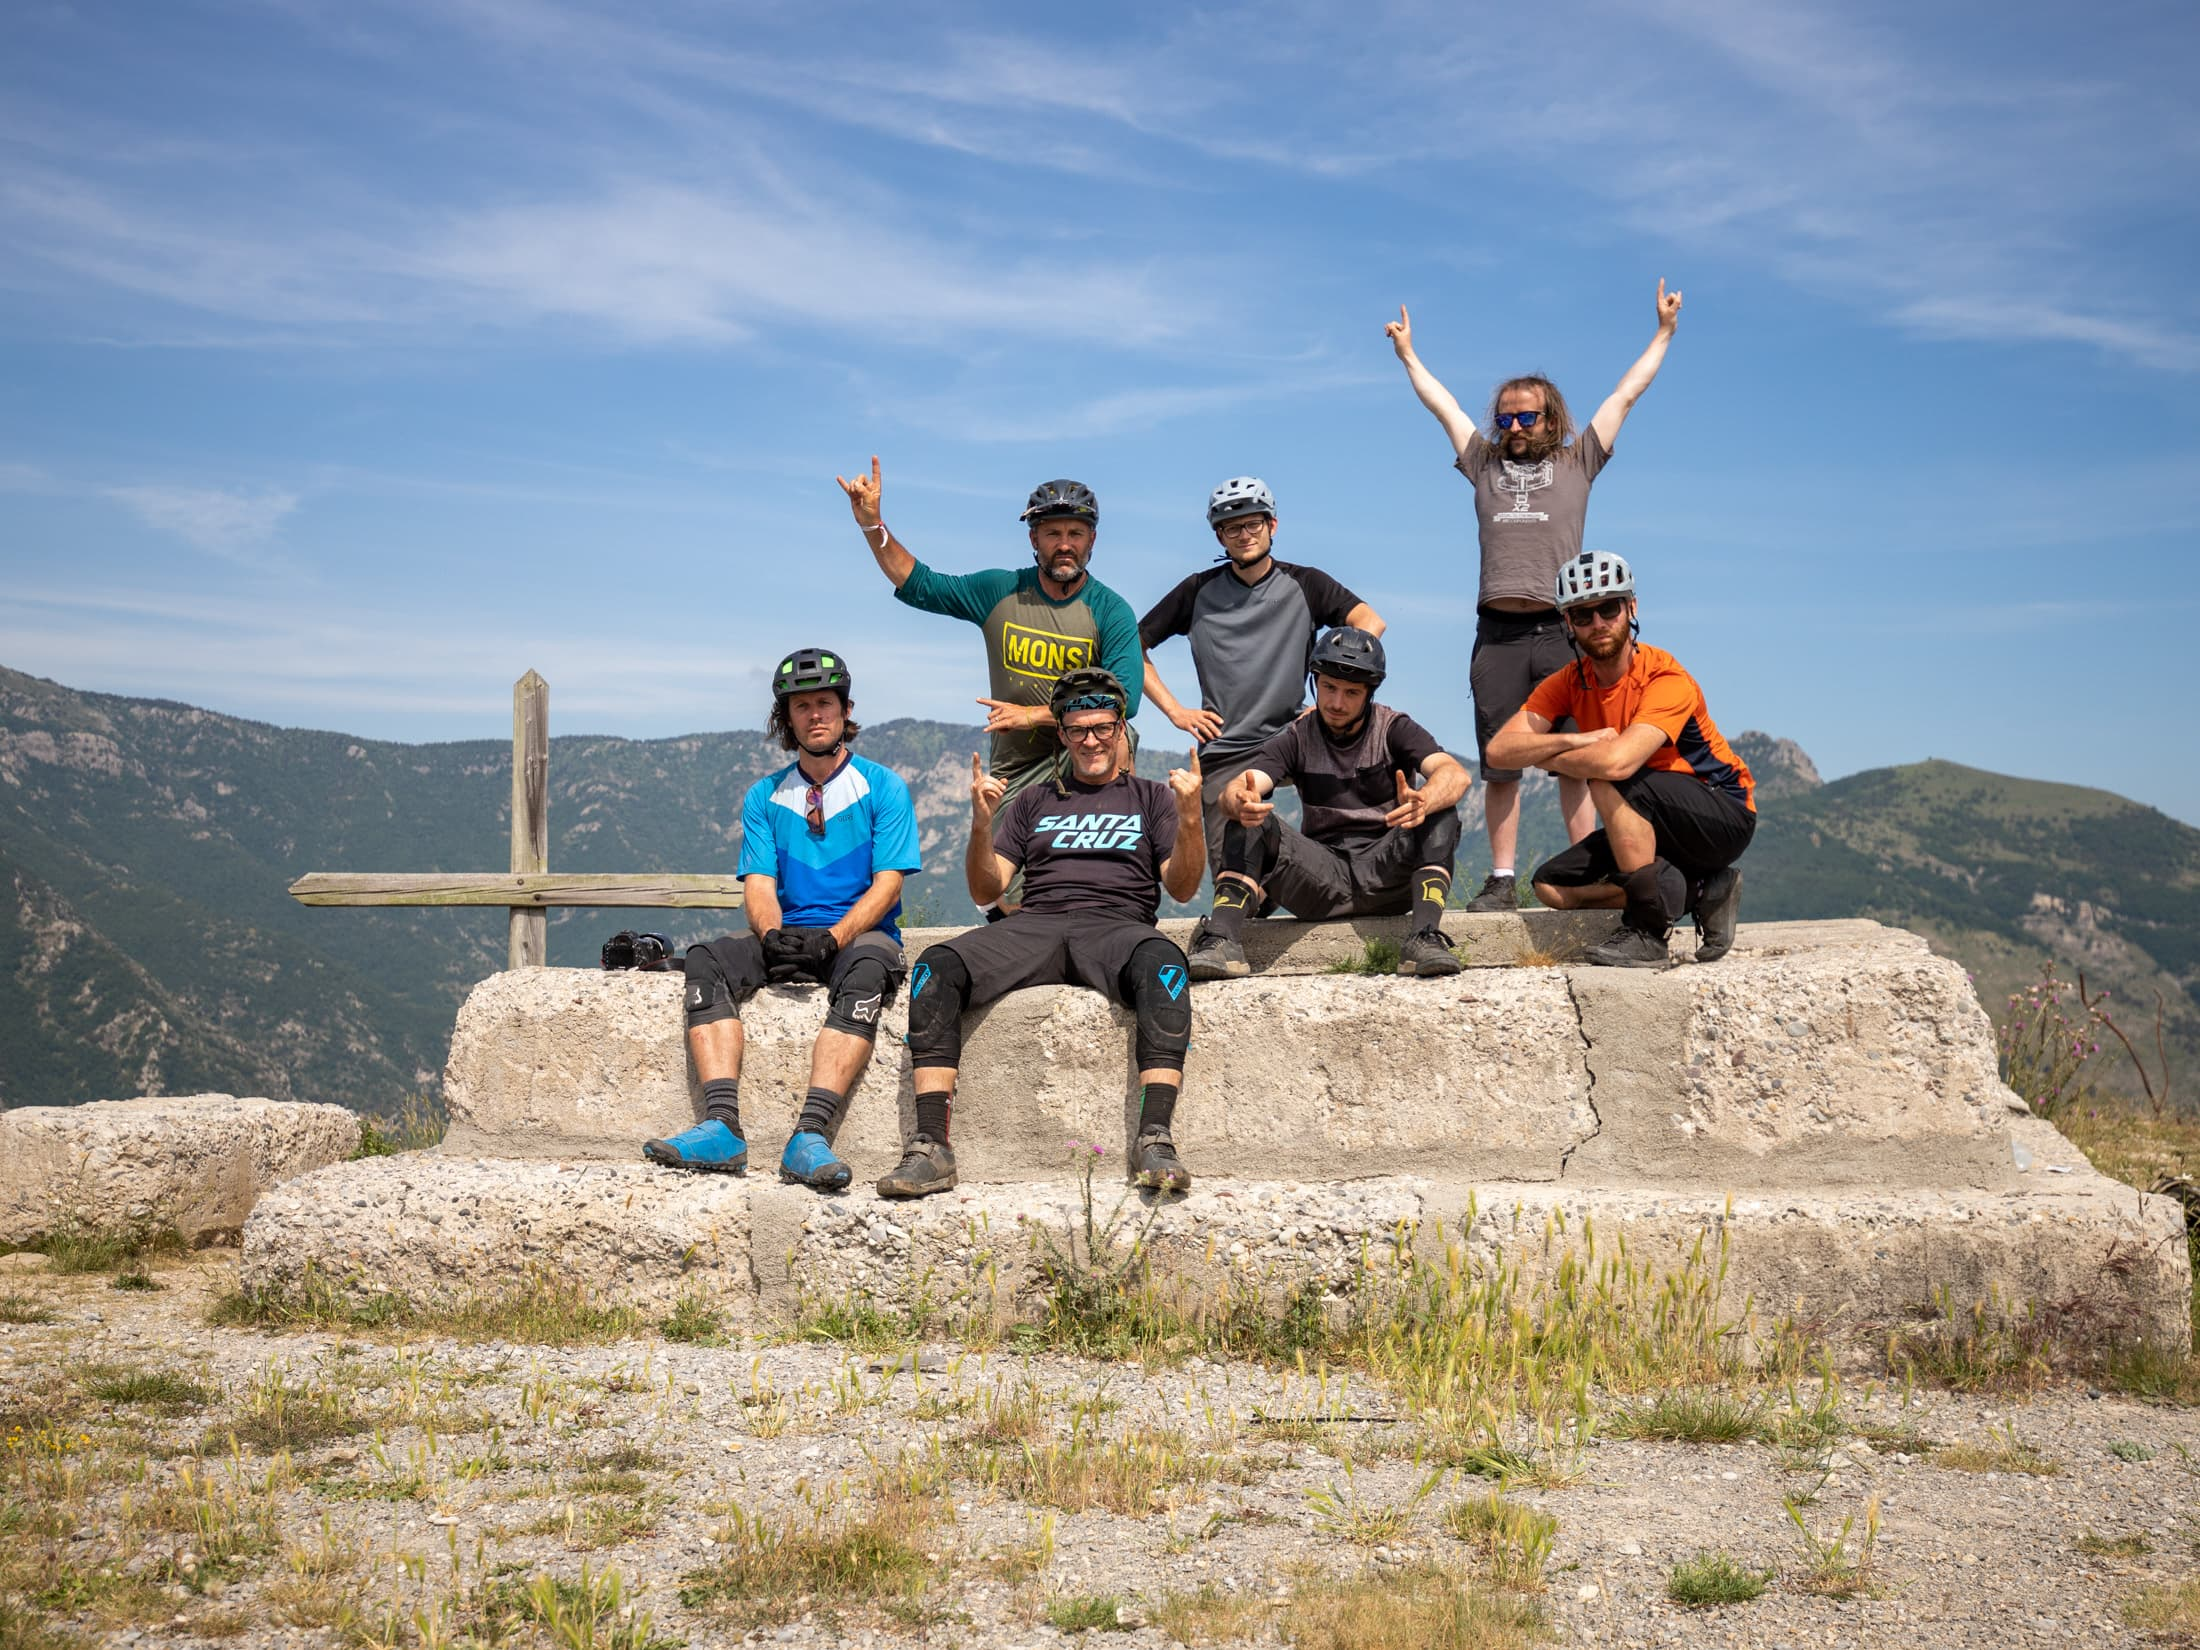 Santa Cruz Bicycles - The Squids on Day 4 of the 2019 Trans-Provence